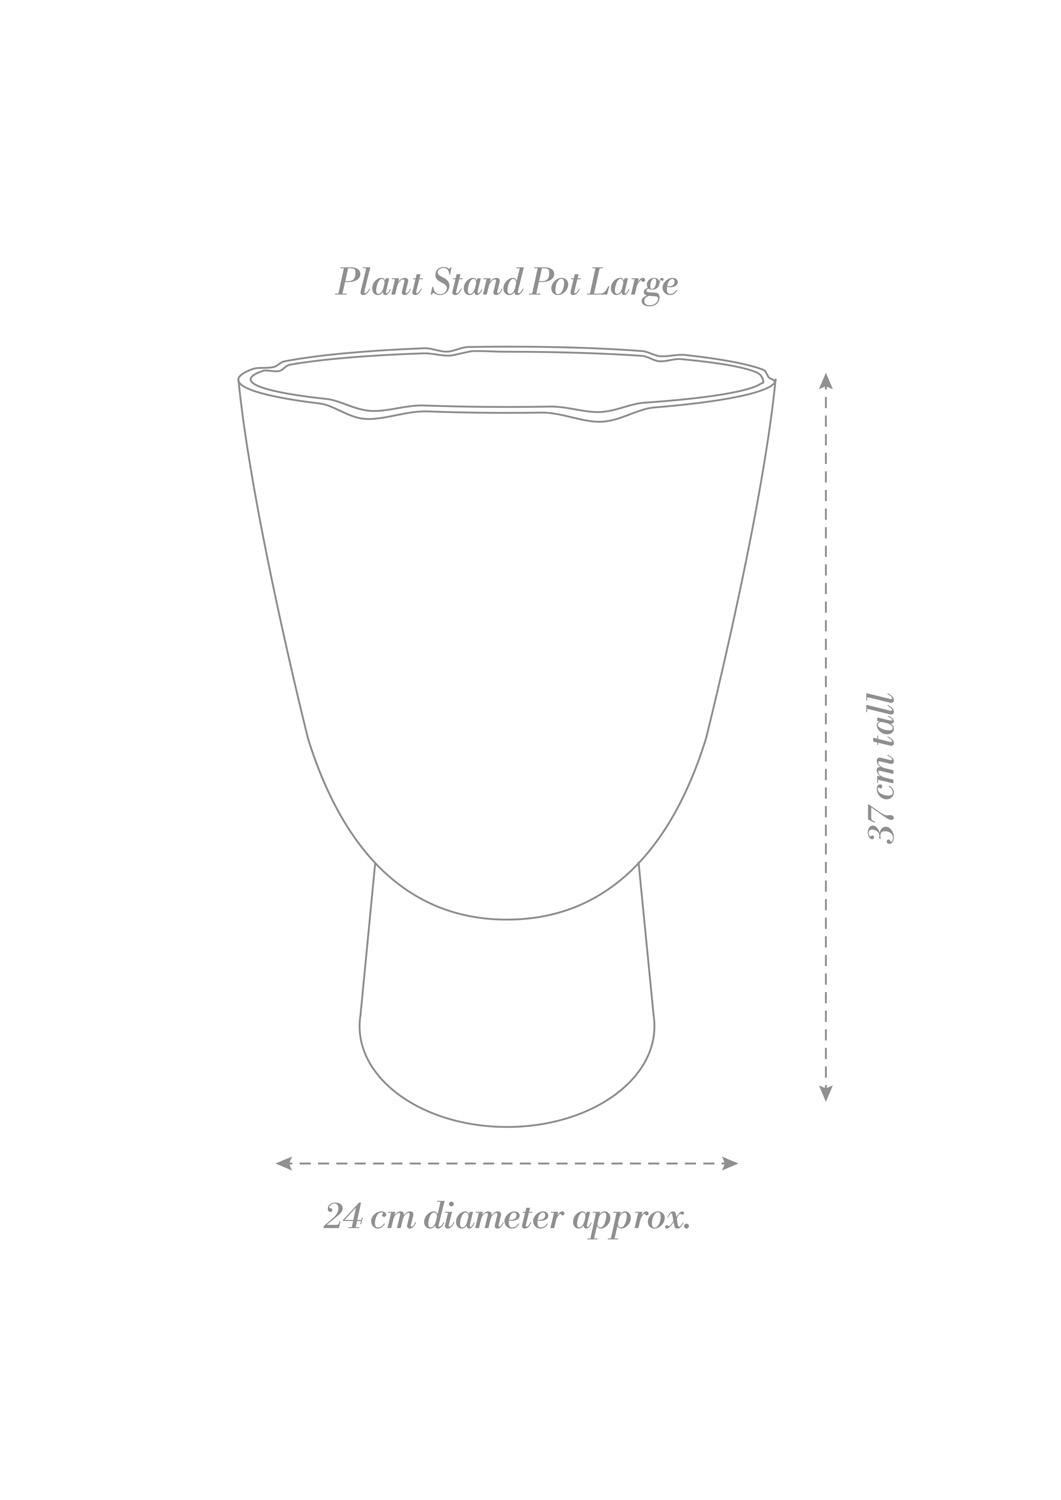 Plant Stand Pot Large Product Diagram